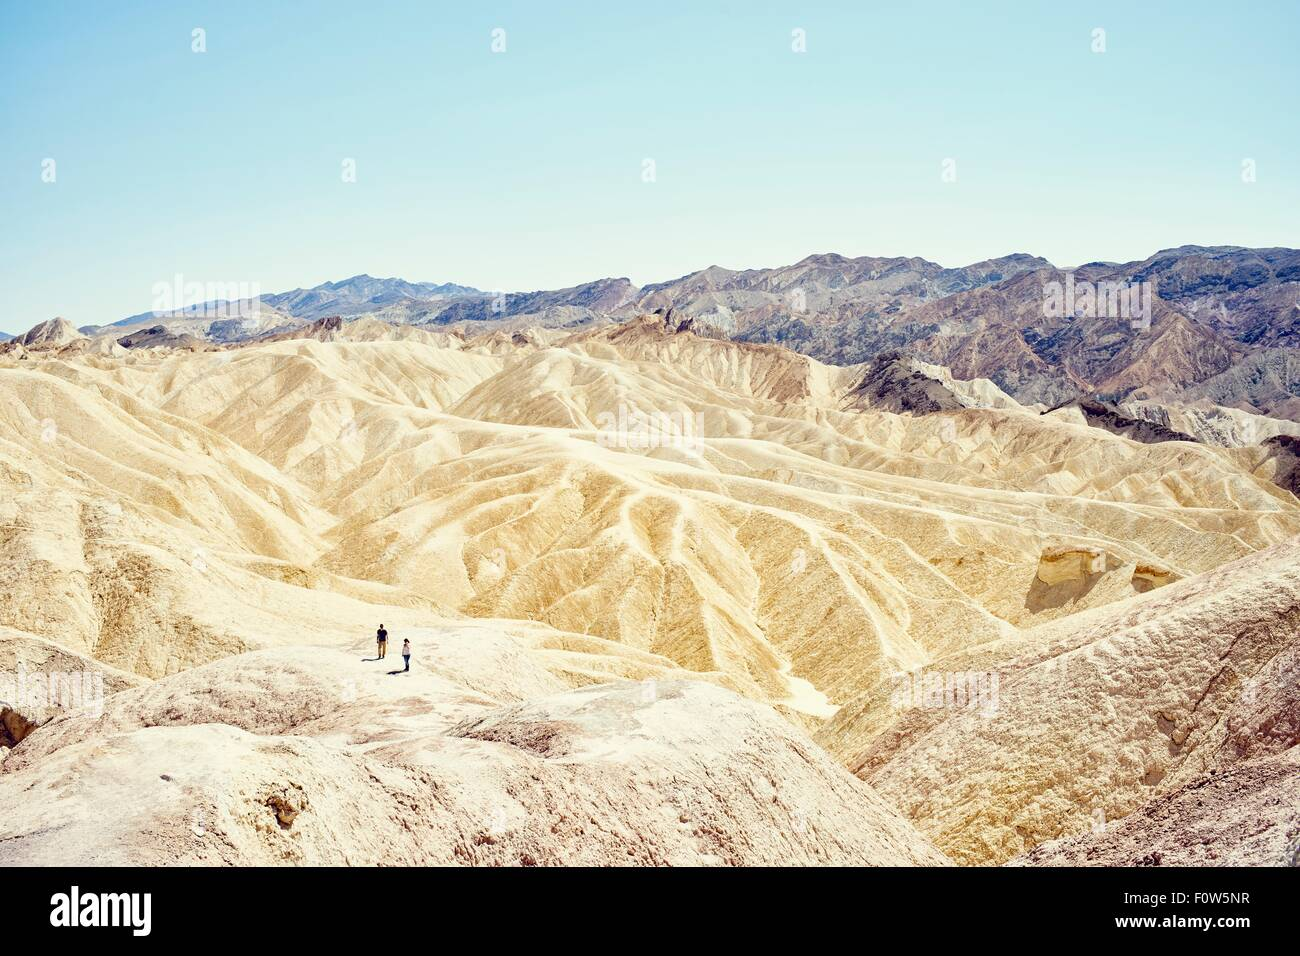 Blick auf zwei Touristen am Zabriskie Point, Death Valley, Kalifornien, USA Stockbild